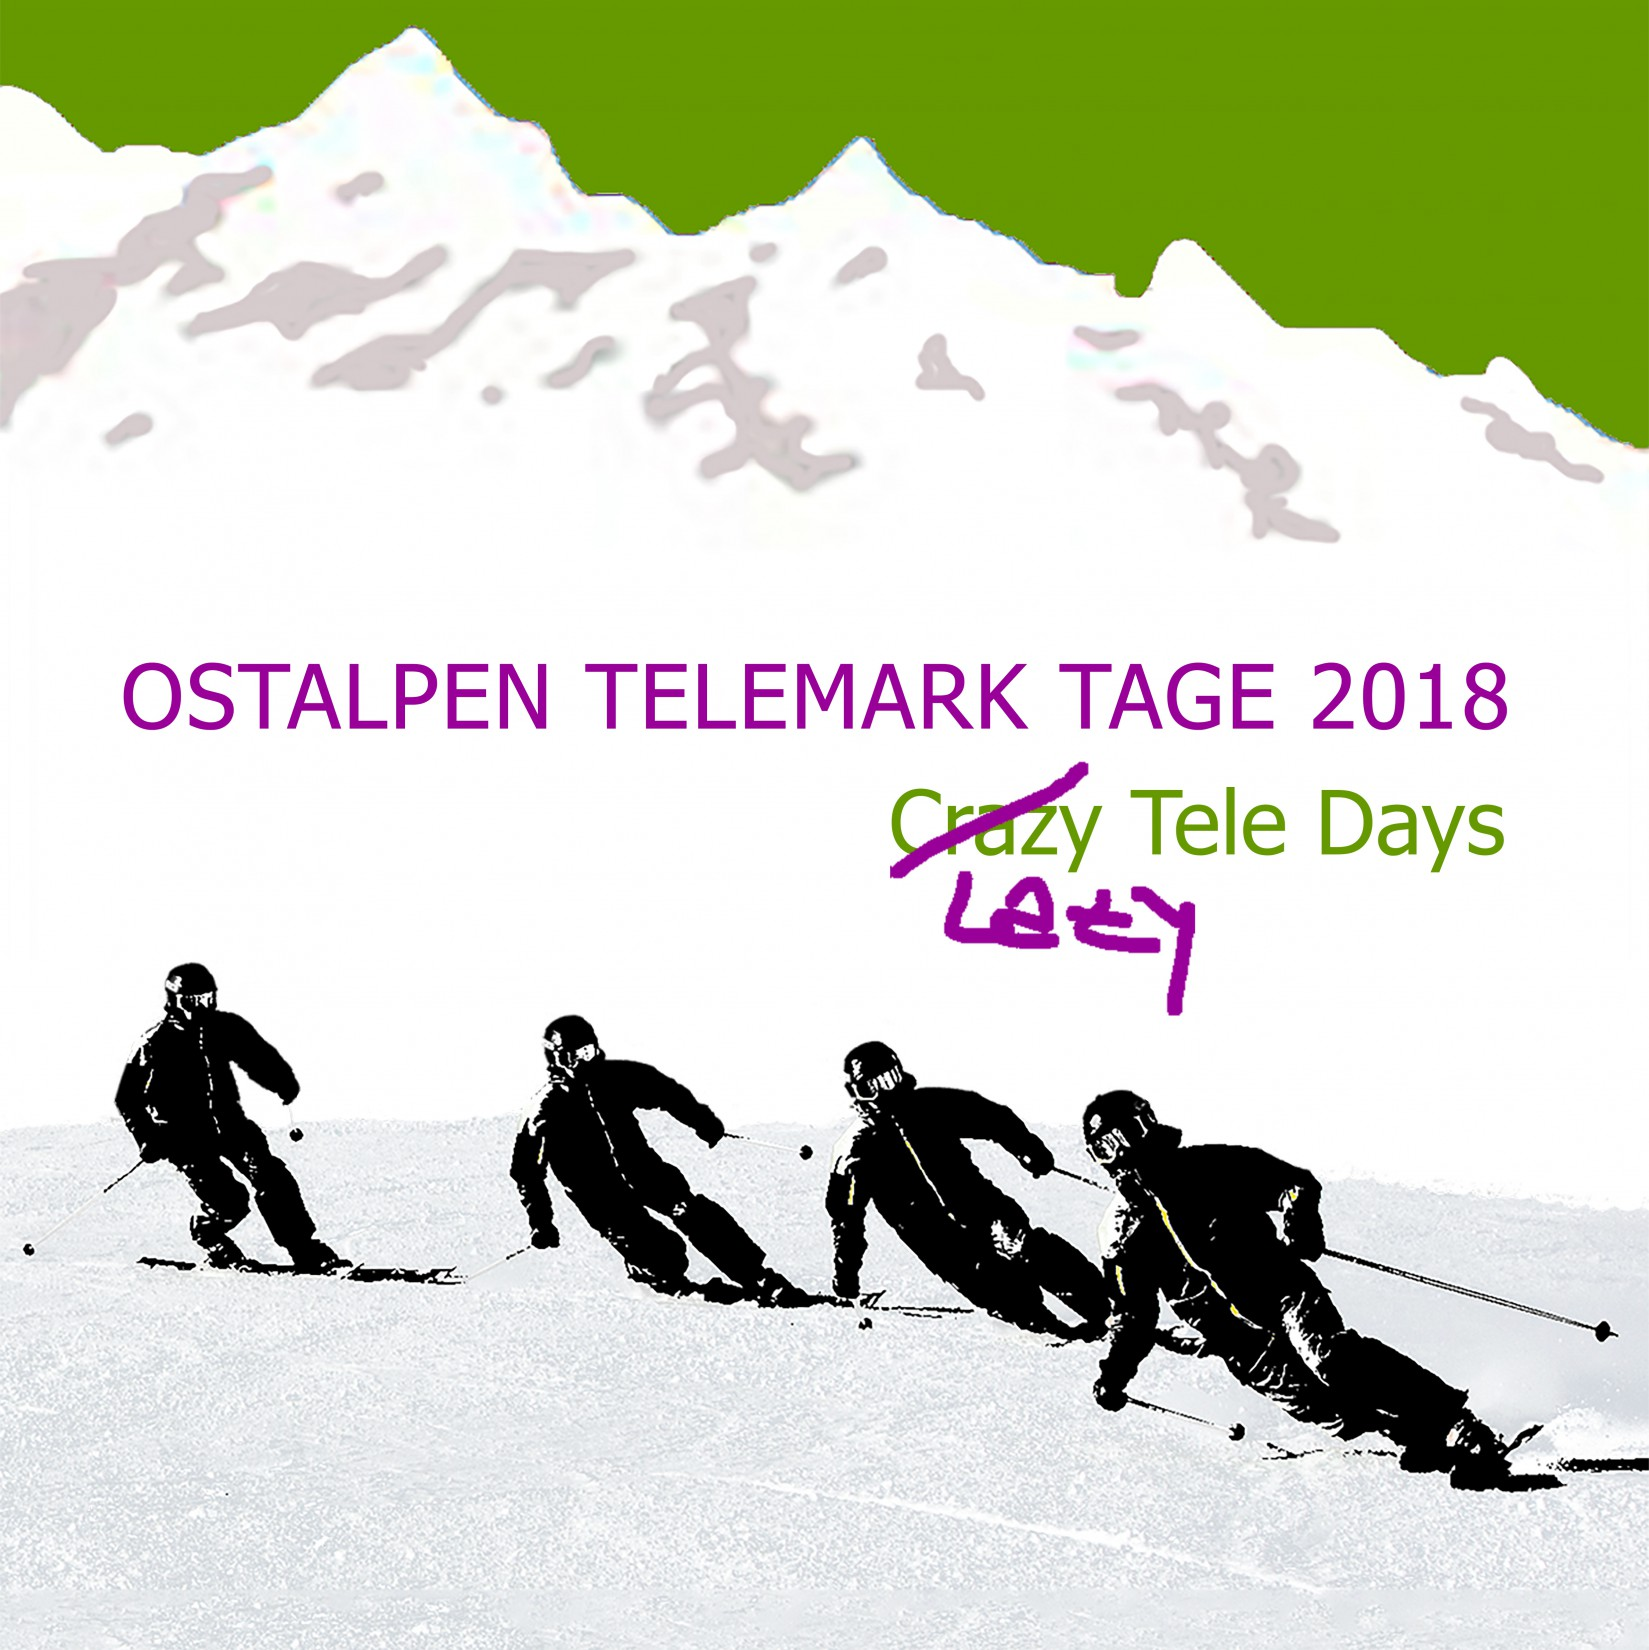 Ostalpen Telemark Tage 2018 - Crazy/Lazy Tele Days am Hochkar